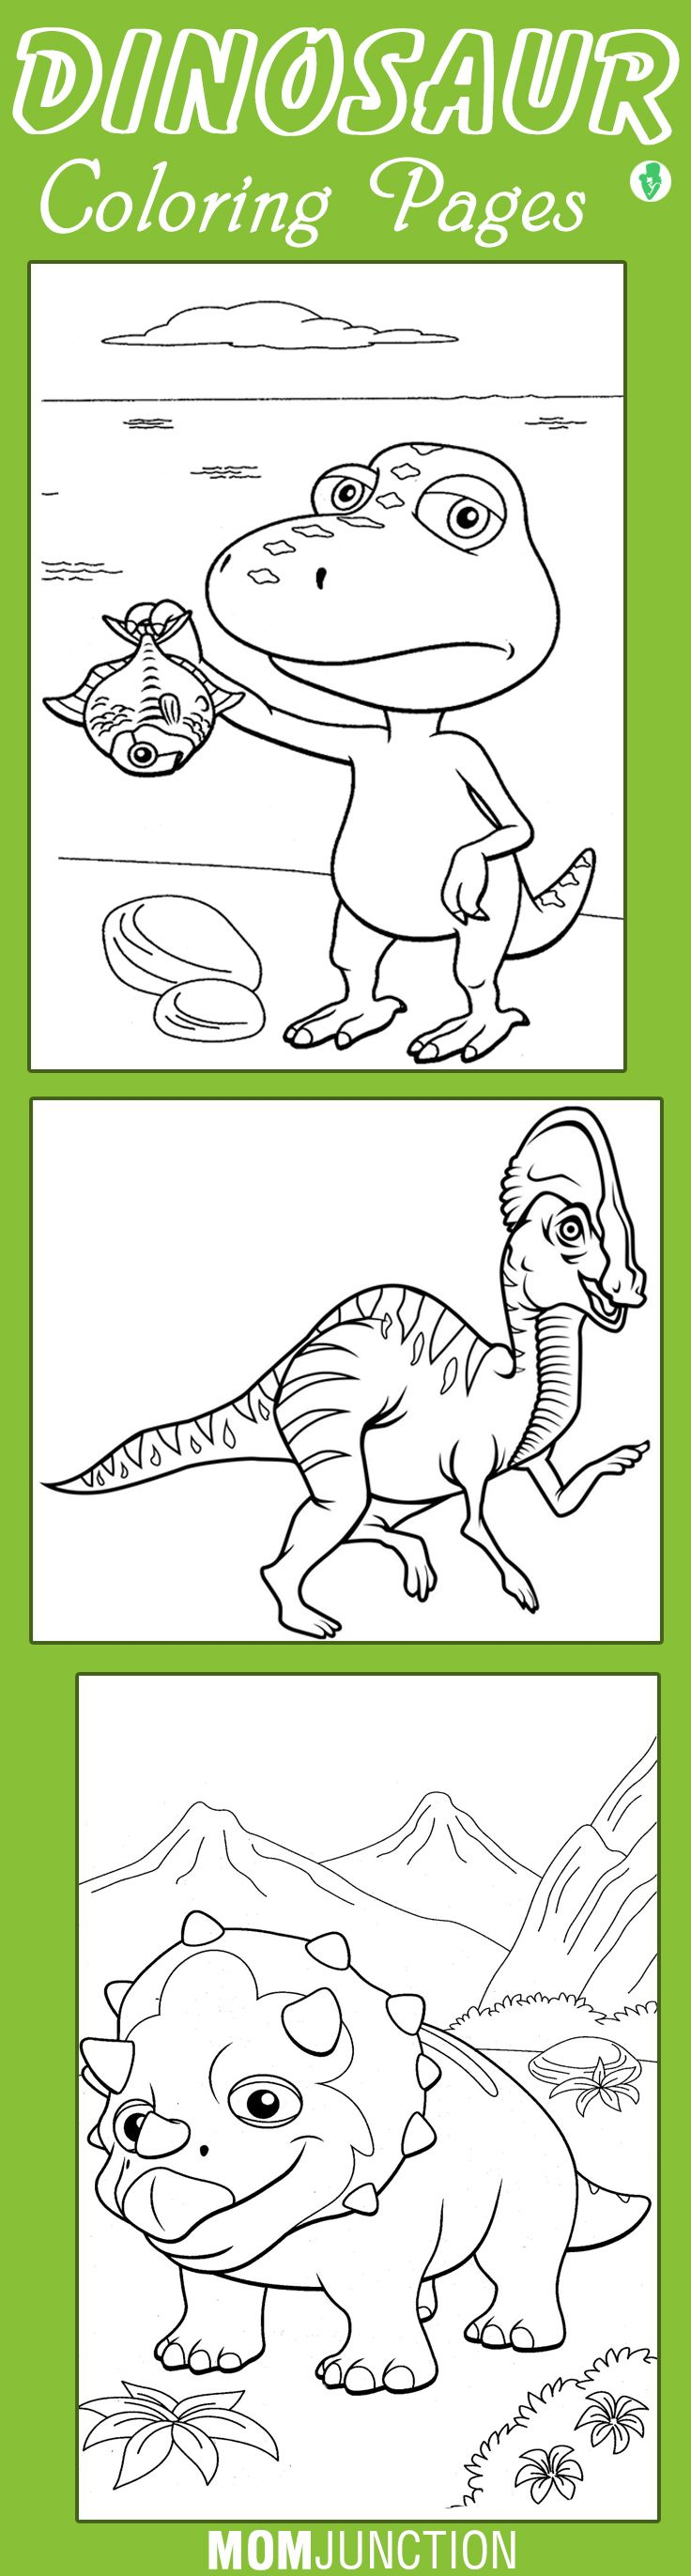 Top 10 Free Printable Dinosaur Train Coloring Pages Online ...